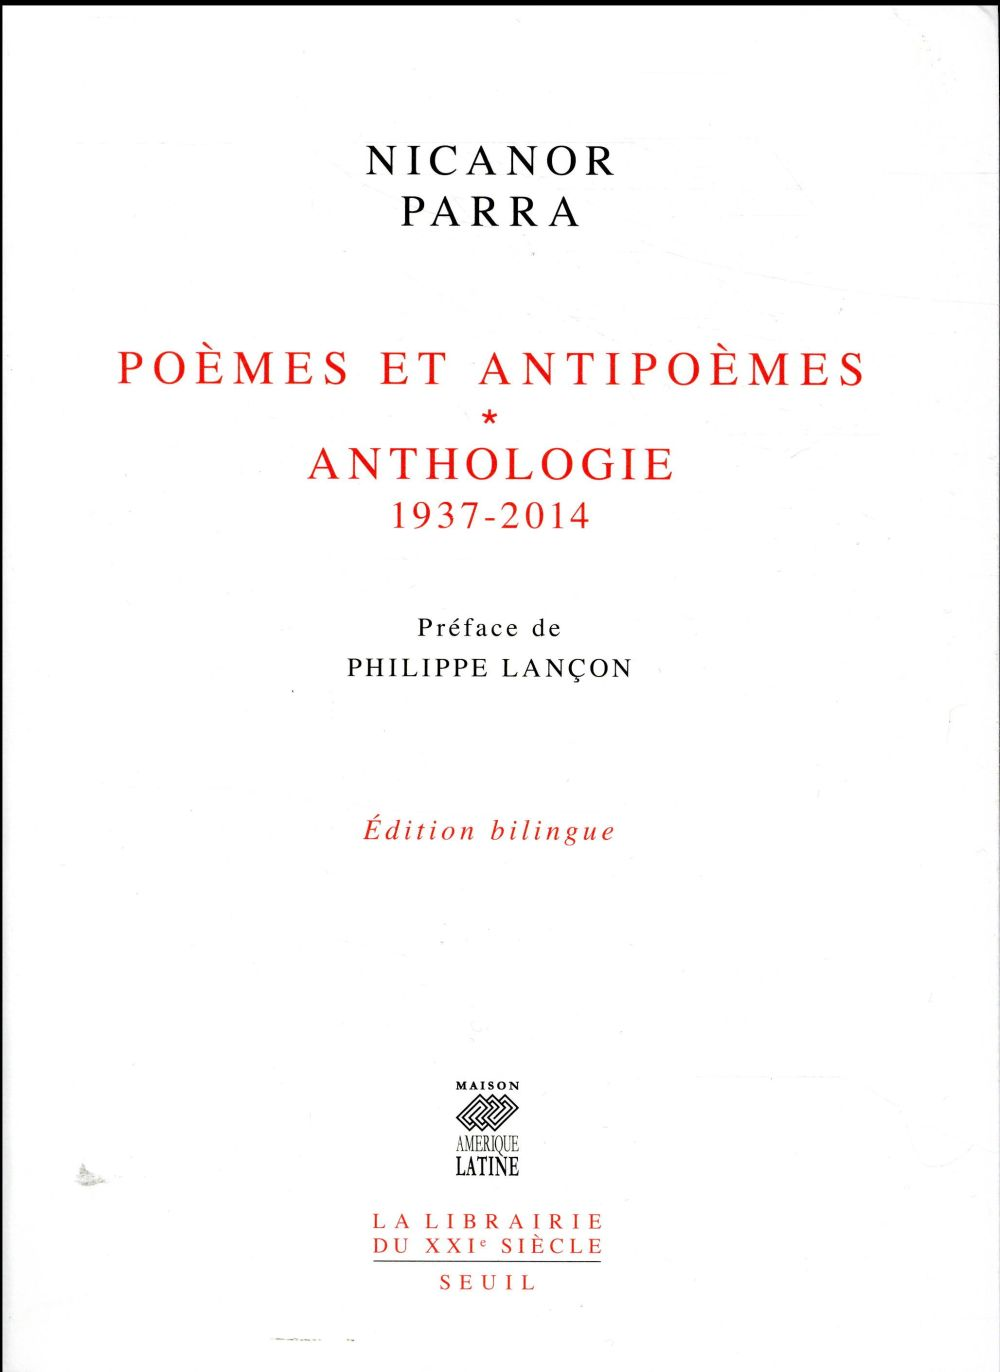 POEMES ET ANTIPOEMES  -  ANTHOLOGIE 1937-2014